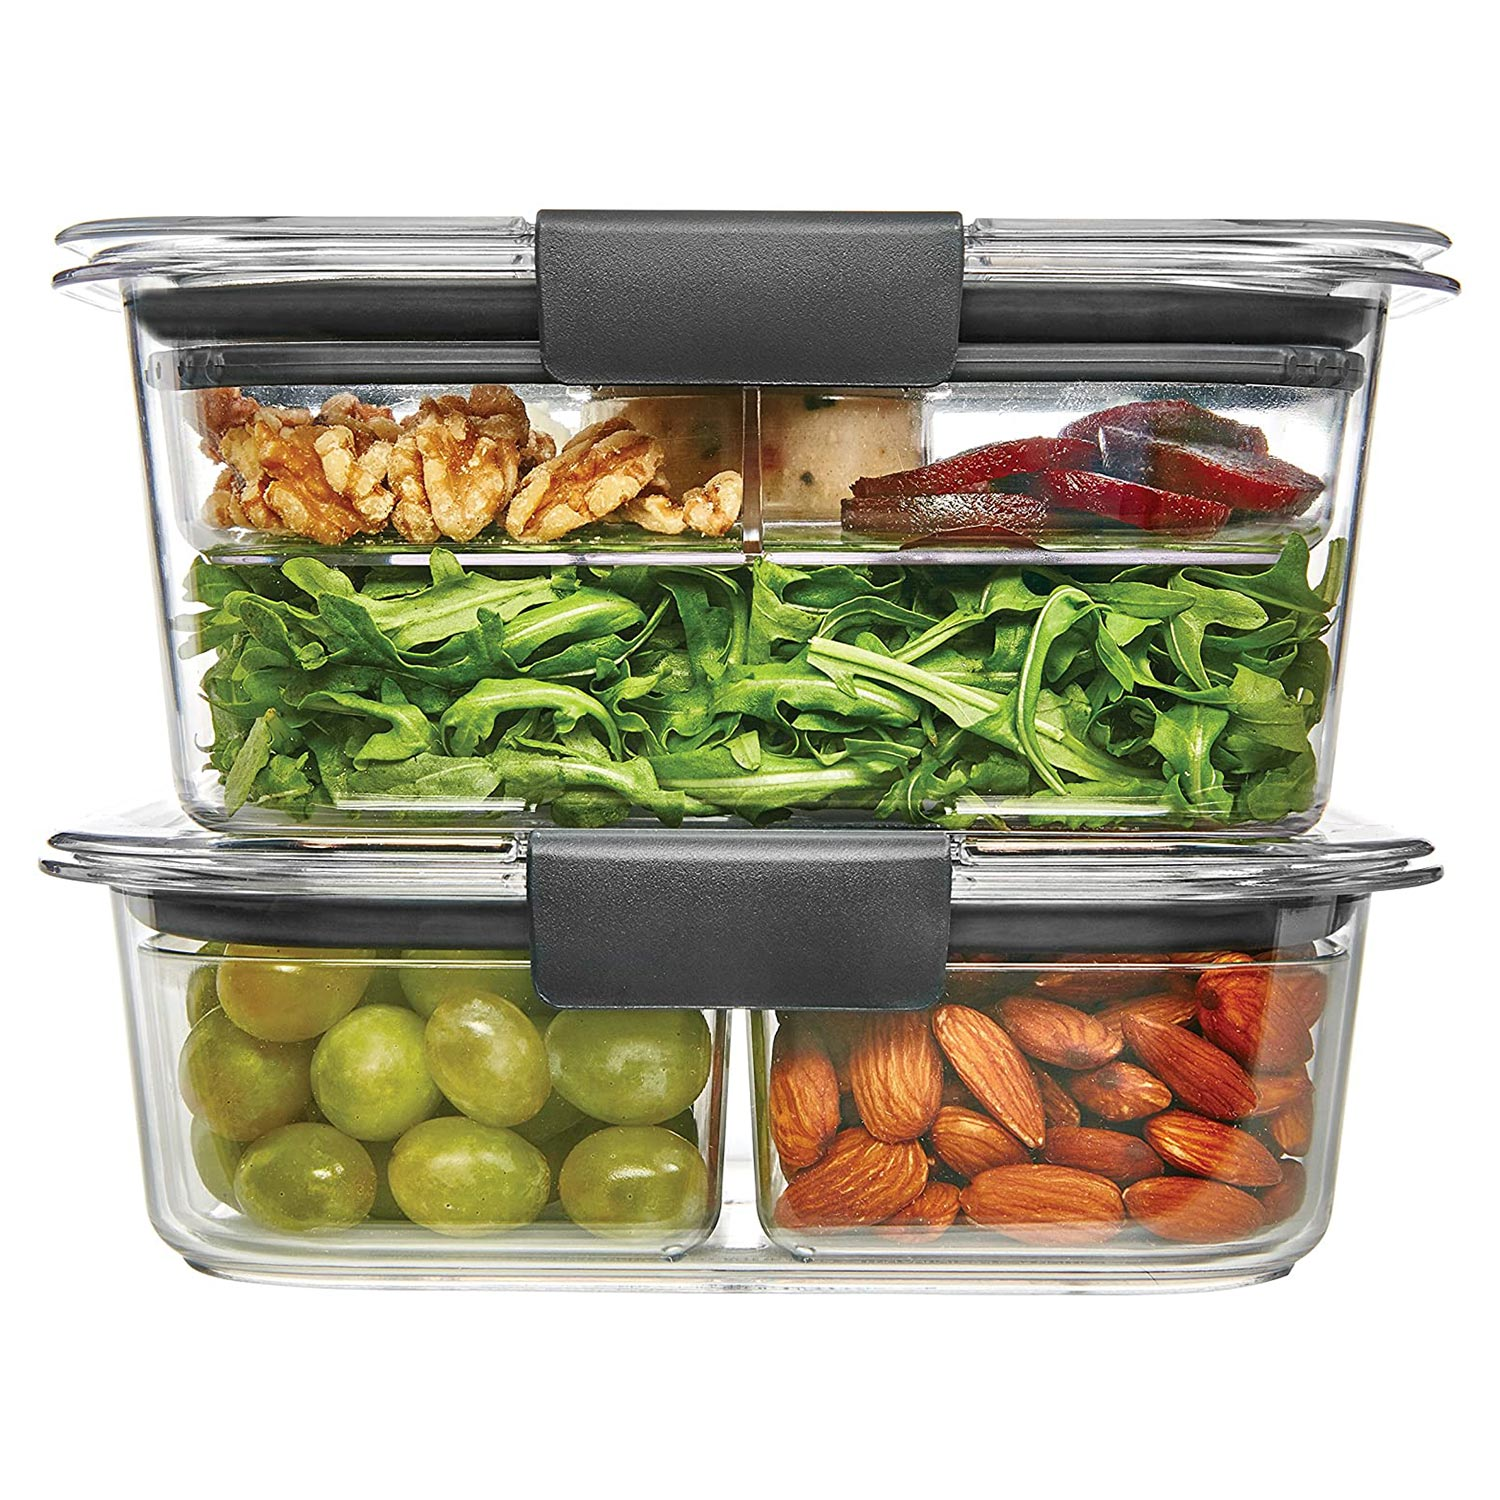 Rubbermaid Brilliance Food Storage Container, Salad and Snack Lunch Combo Kit, Clear